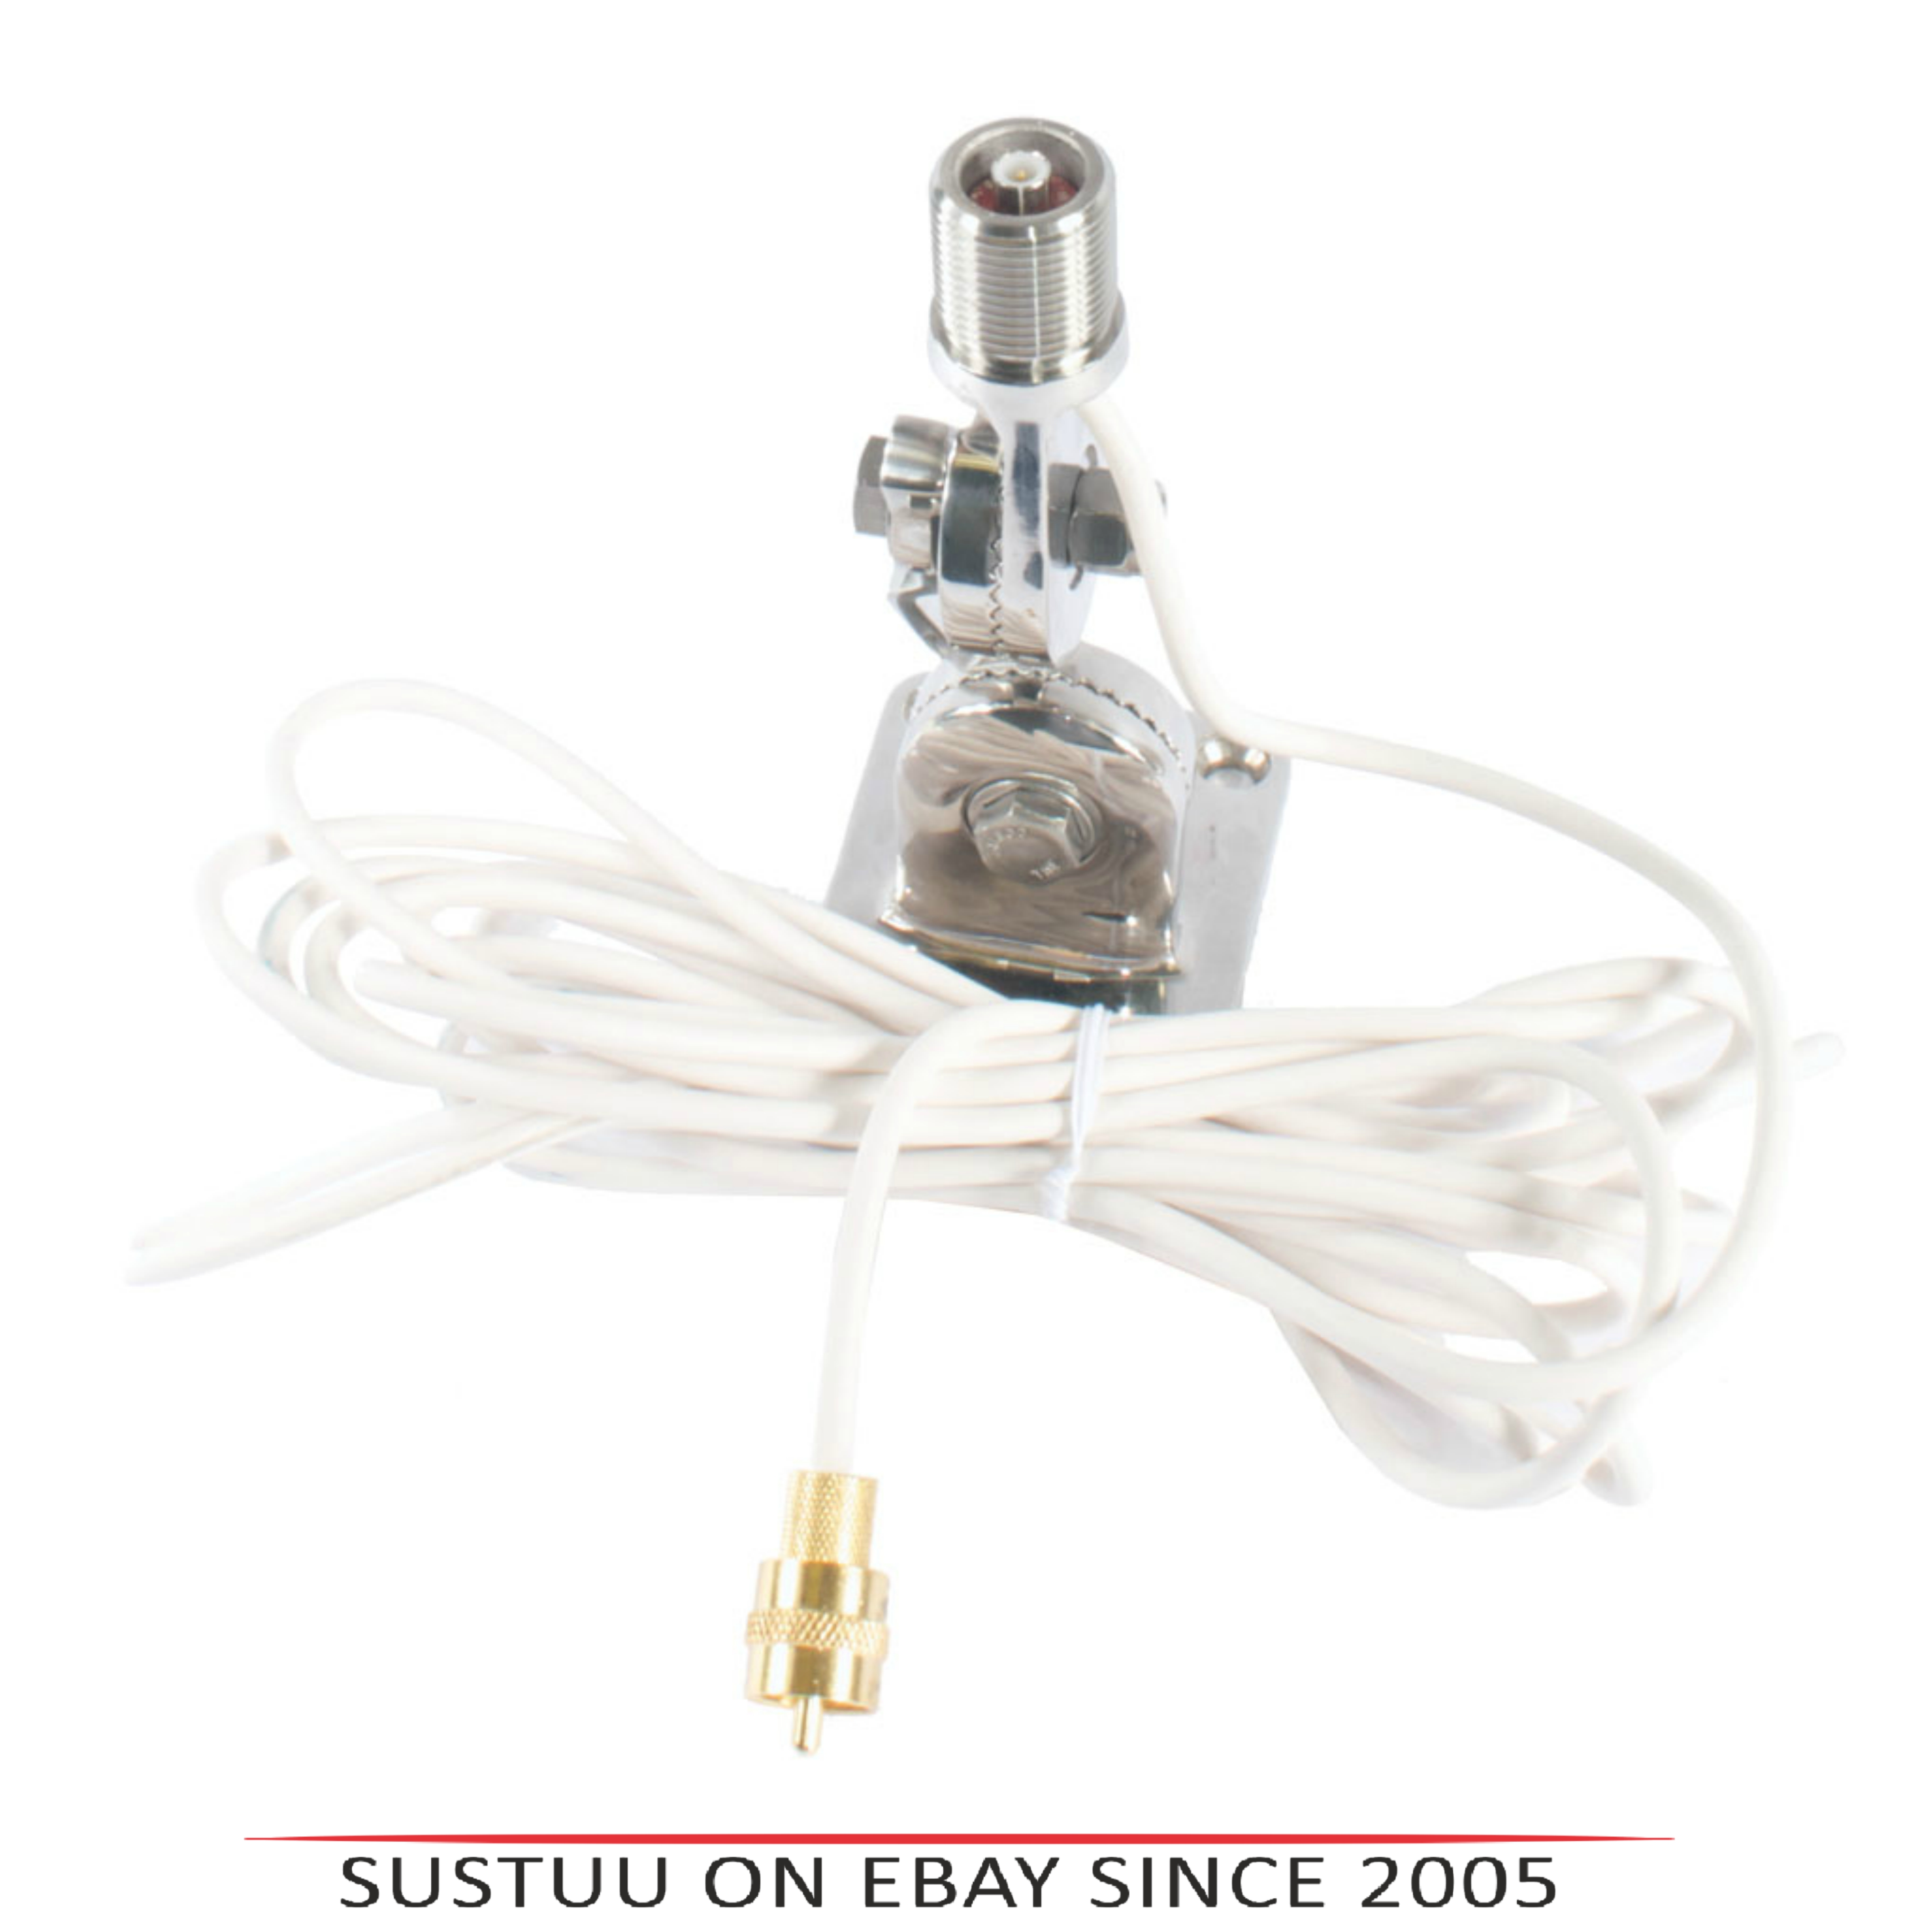 Shakespeare-818-QCM-S|QuickConnect SS Ratchet Mount With Cable|Use For QC Antenna